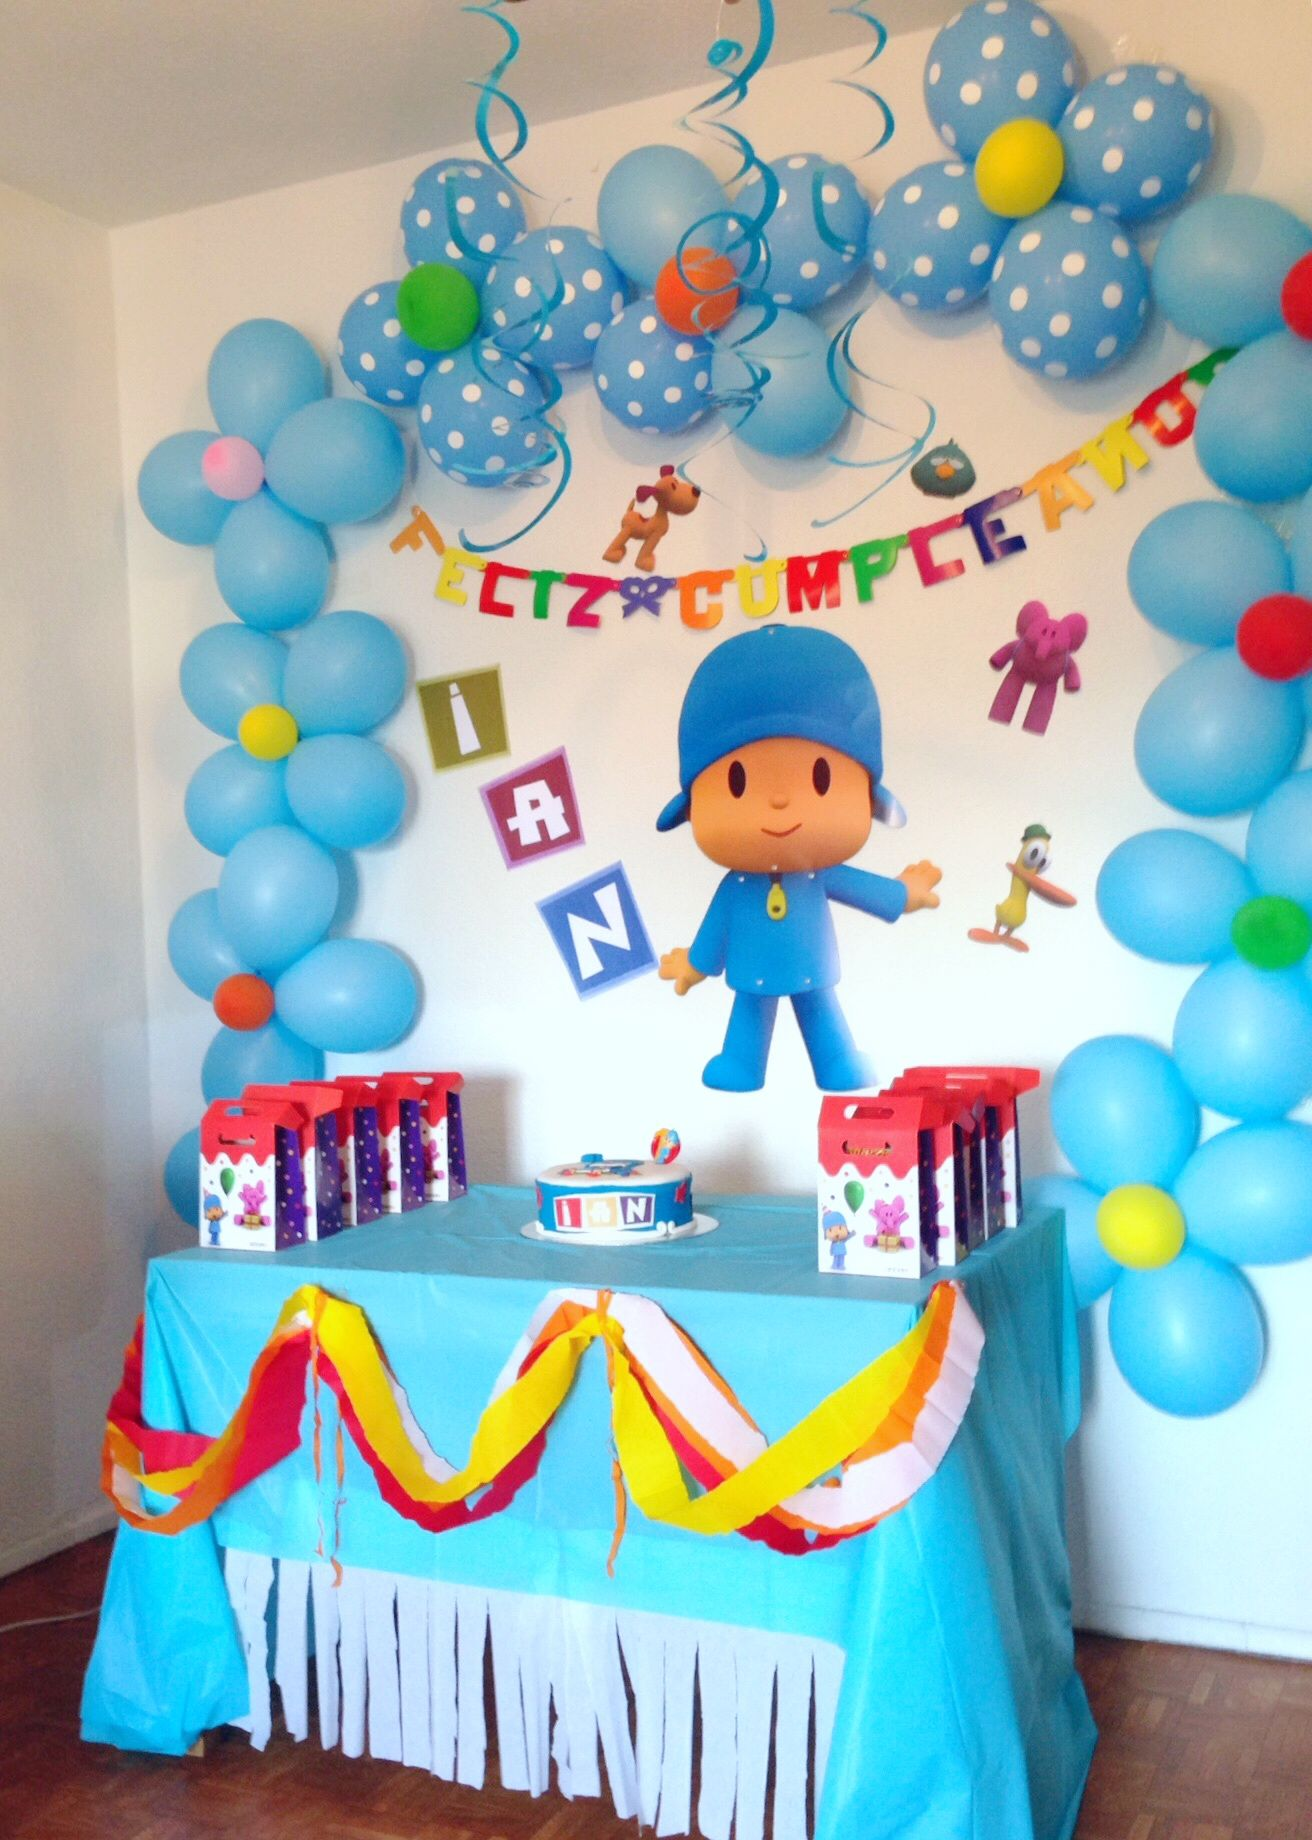 Pocoyo decoraci n cumplea os infantil ideas birthday party - Adornos cumpleanos infantiles ...